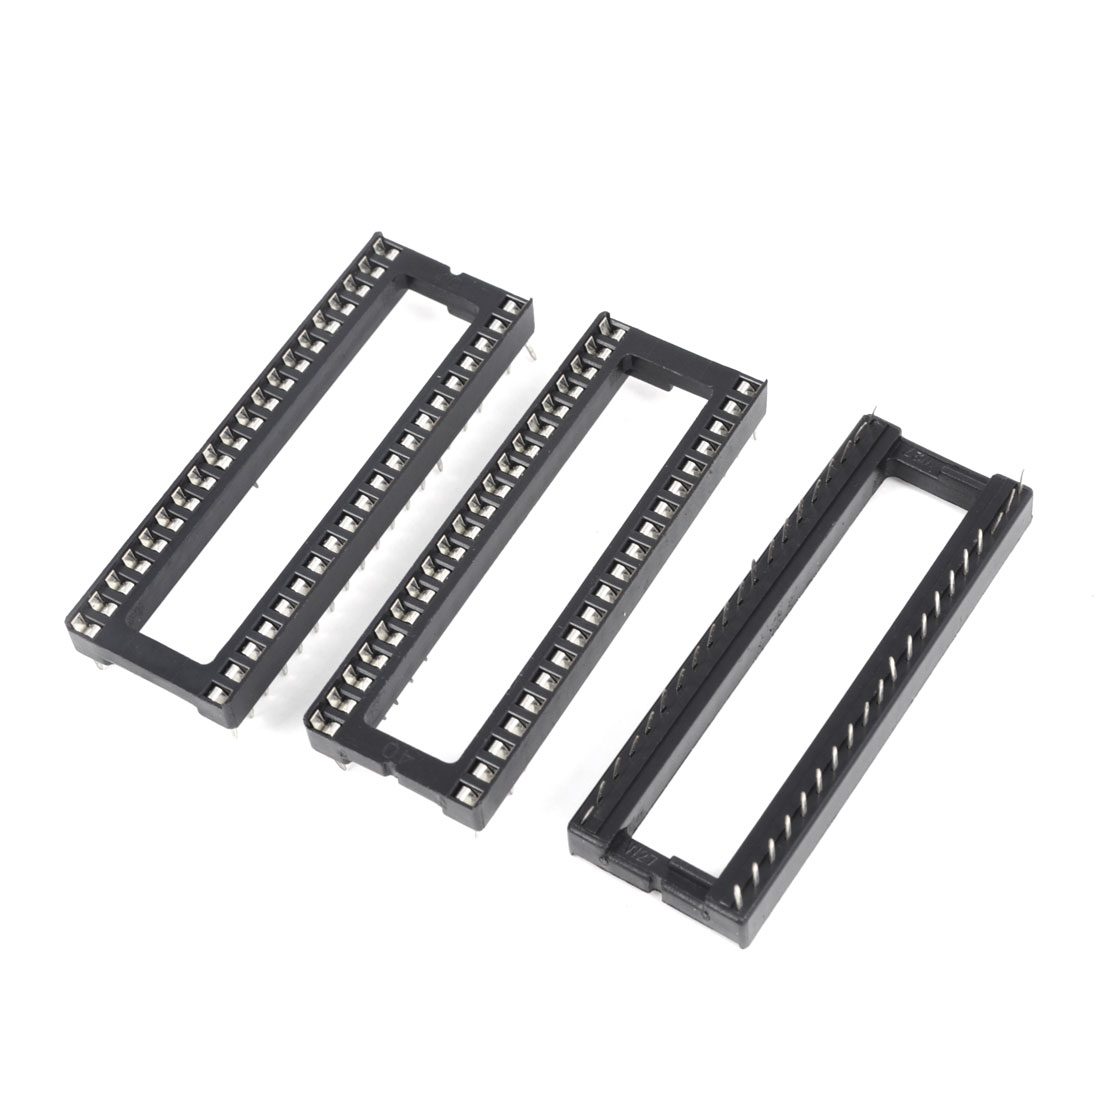 3 Pieces 2.54mm Pitch 40 Pins Double Row DIP IC Socket Adapter Solder